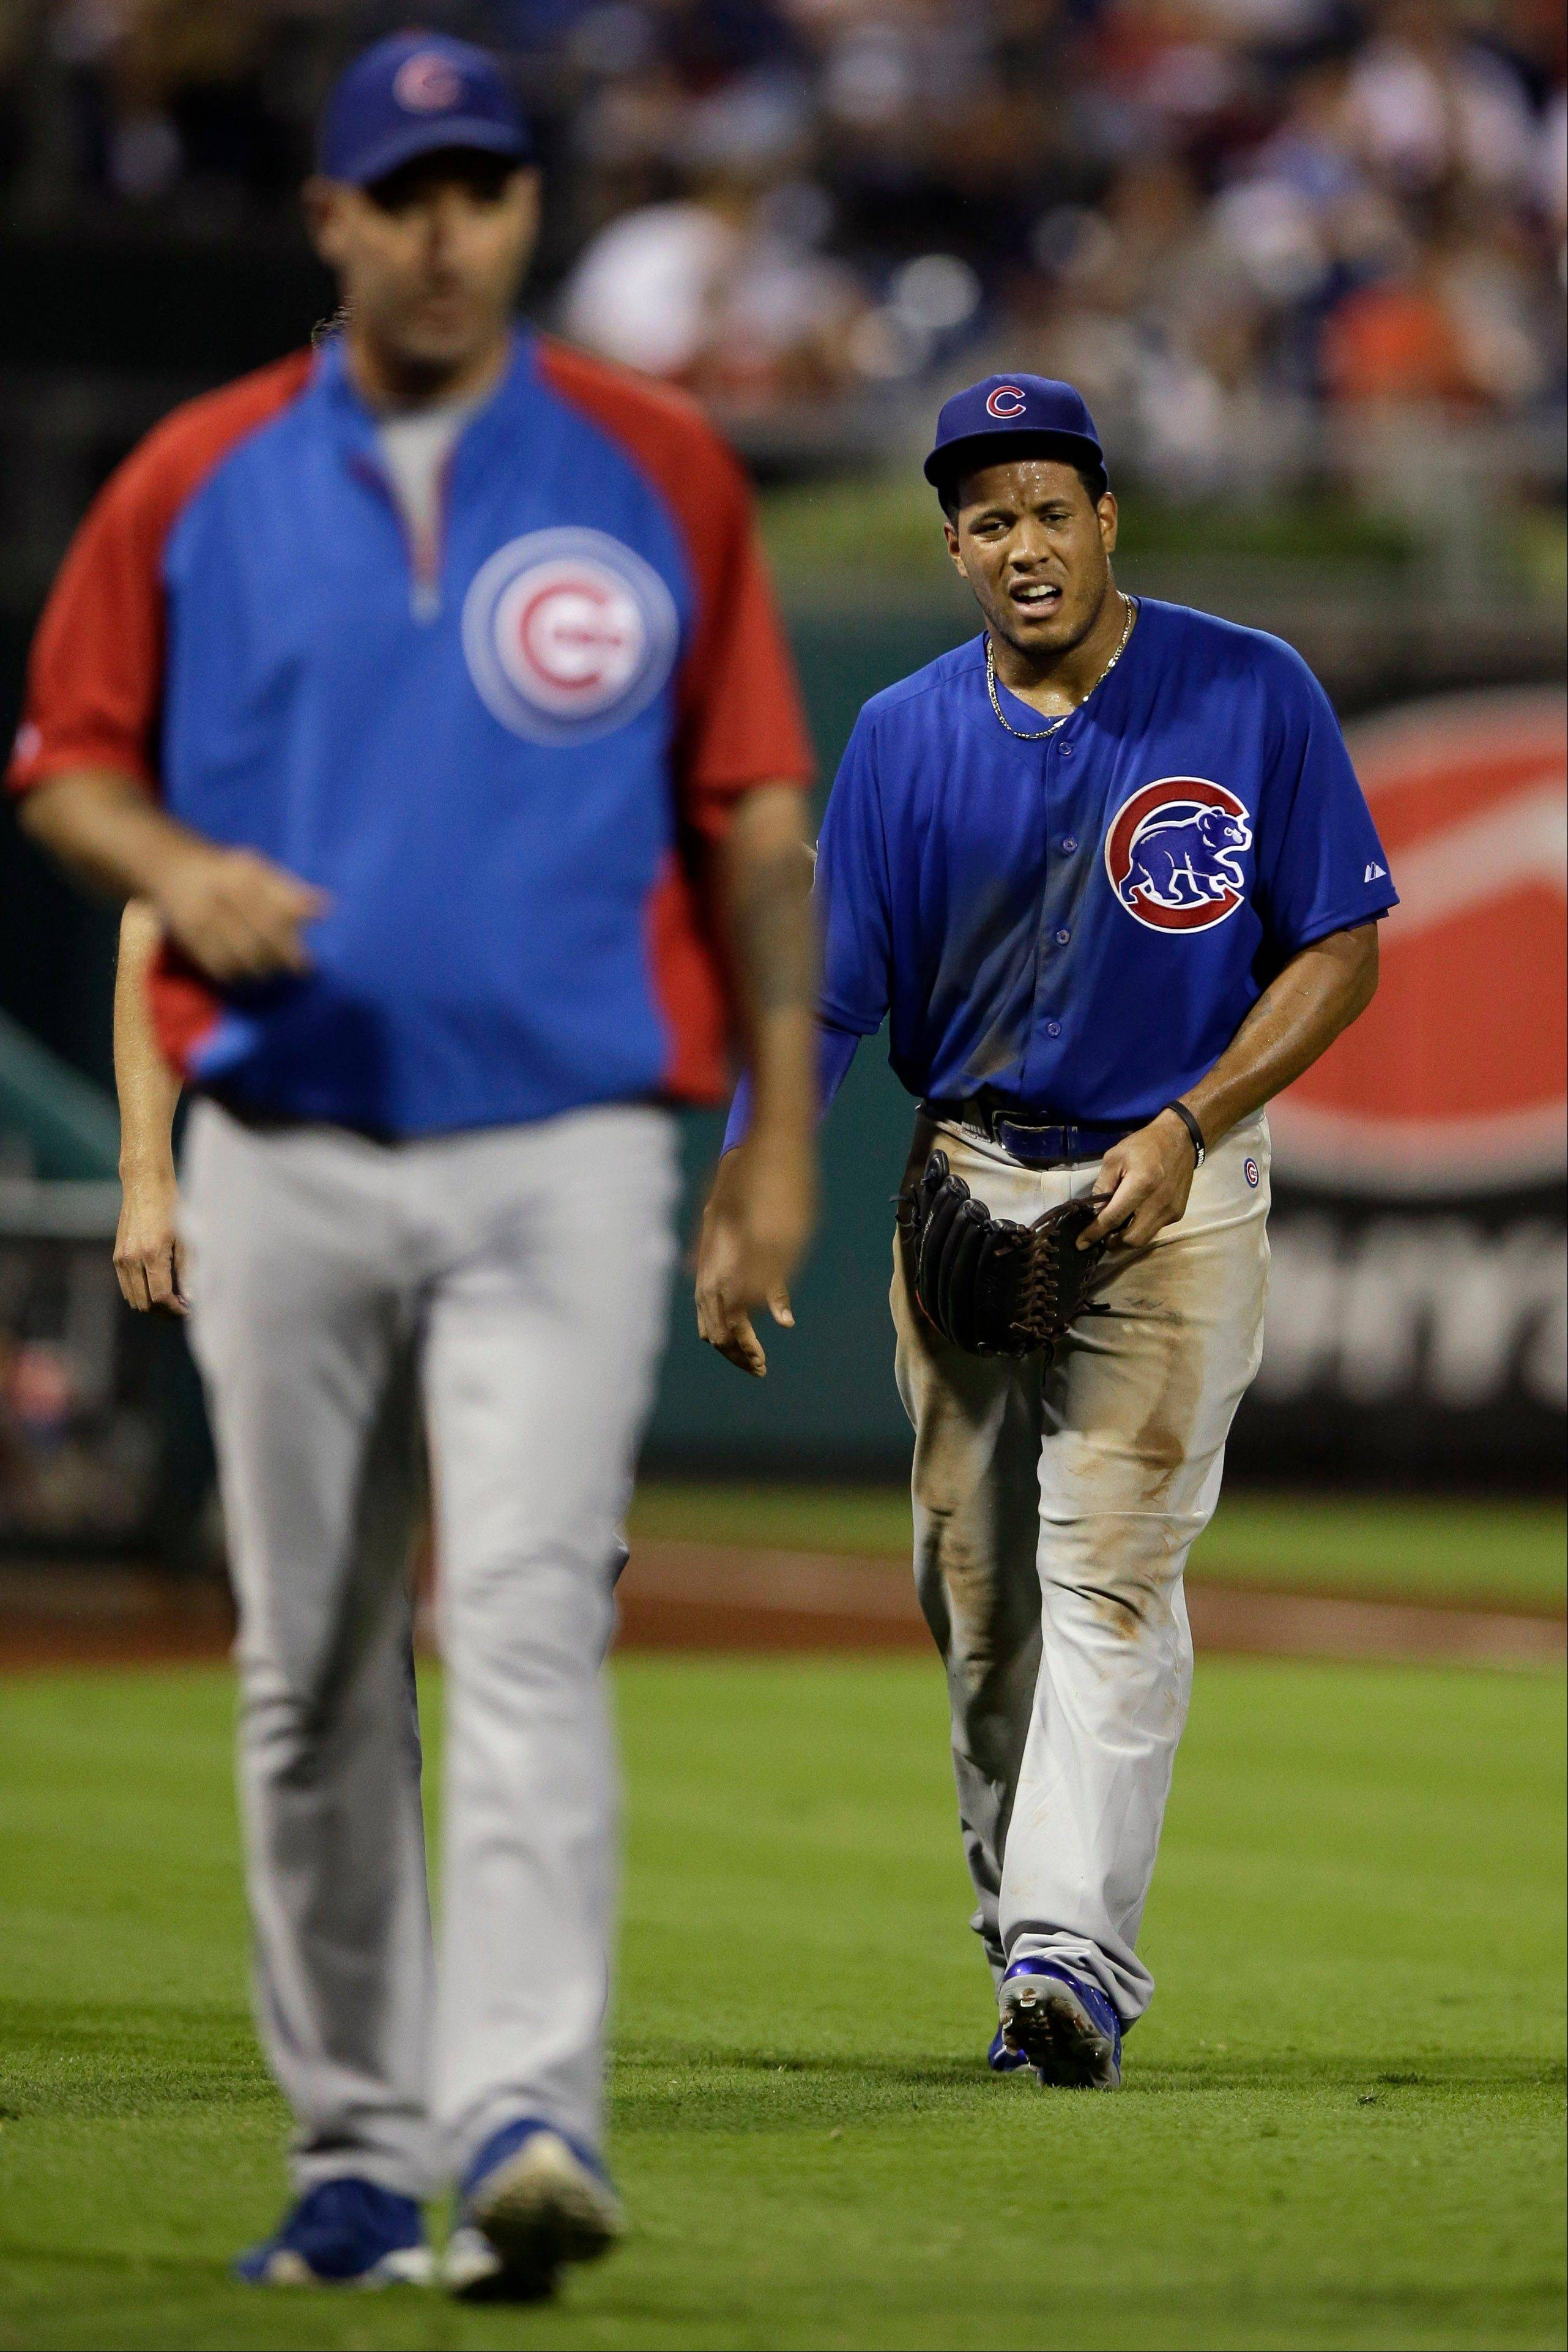 Chicago Cubs' Thomas Neal, right, walks off the field after an injury during the seventh inning of a baseball game against the Philadelphia Phillies, Wednesday, Aug. 7, 2013, in Philadelphia. (AP Photo/Matt Slocum)